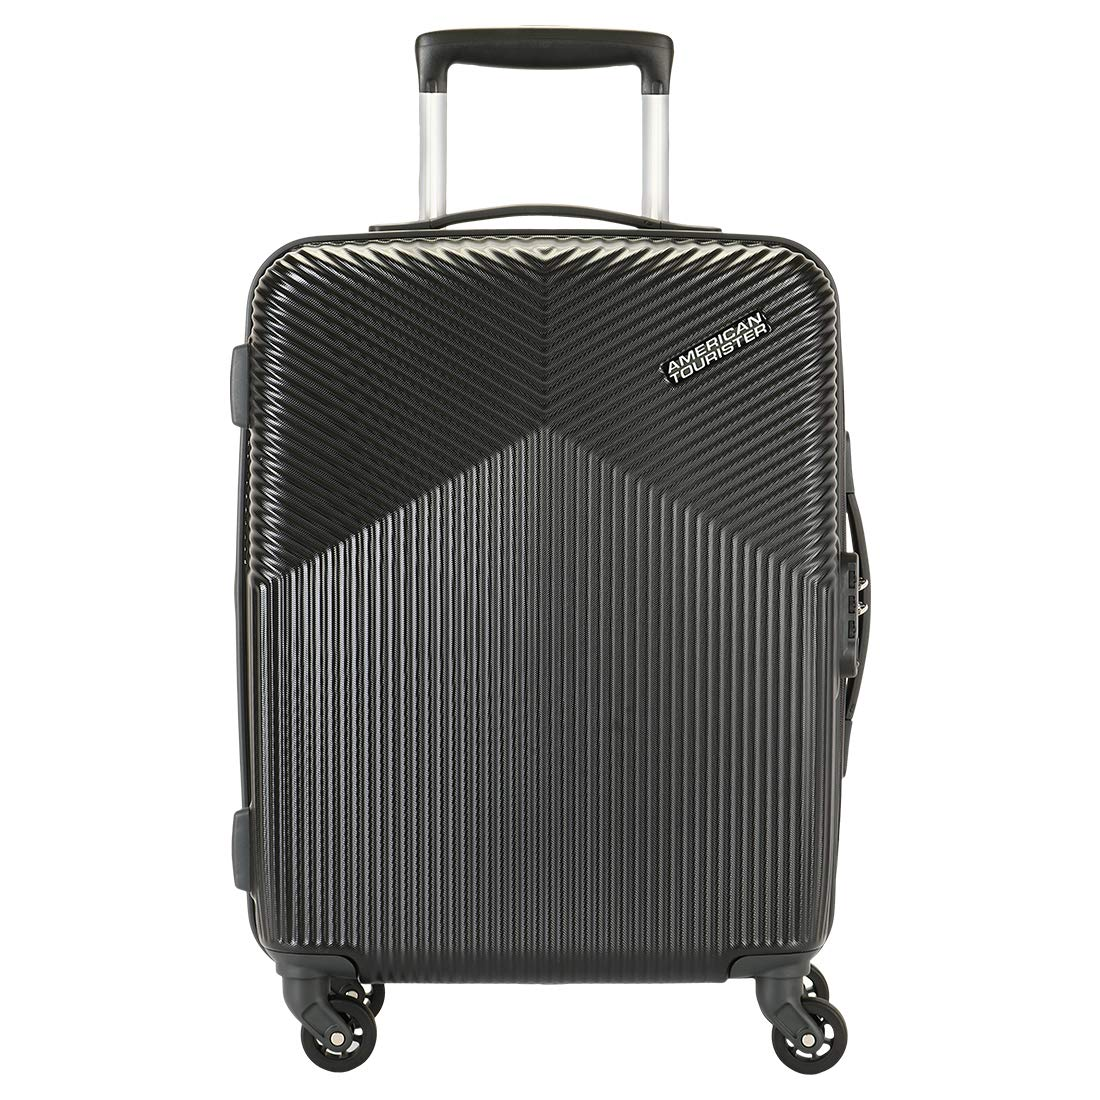 American Tourister Georgia Polycarbonate 79 cms Graphite Hardsided Check-in Luggage (FS3 (0) 78 003)